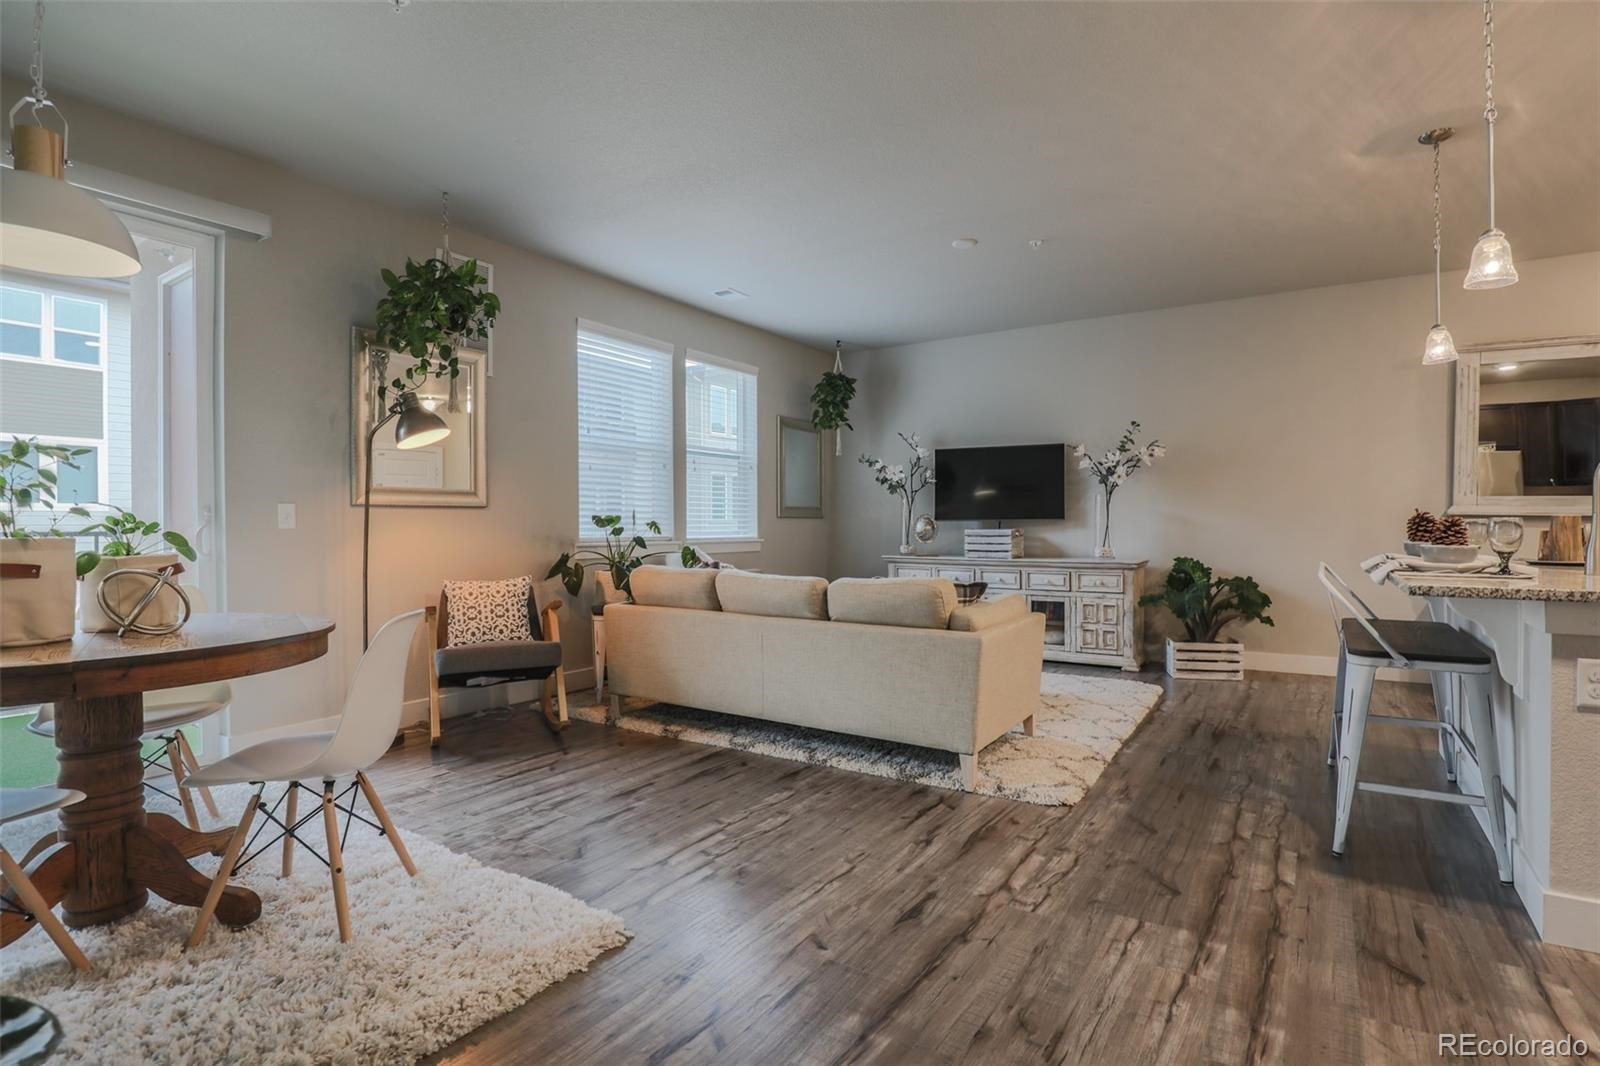 MLS# 8121591 - 4 - 15345 W 64th Lane #207, Arvada, CO 80007